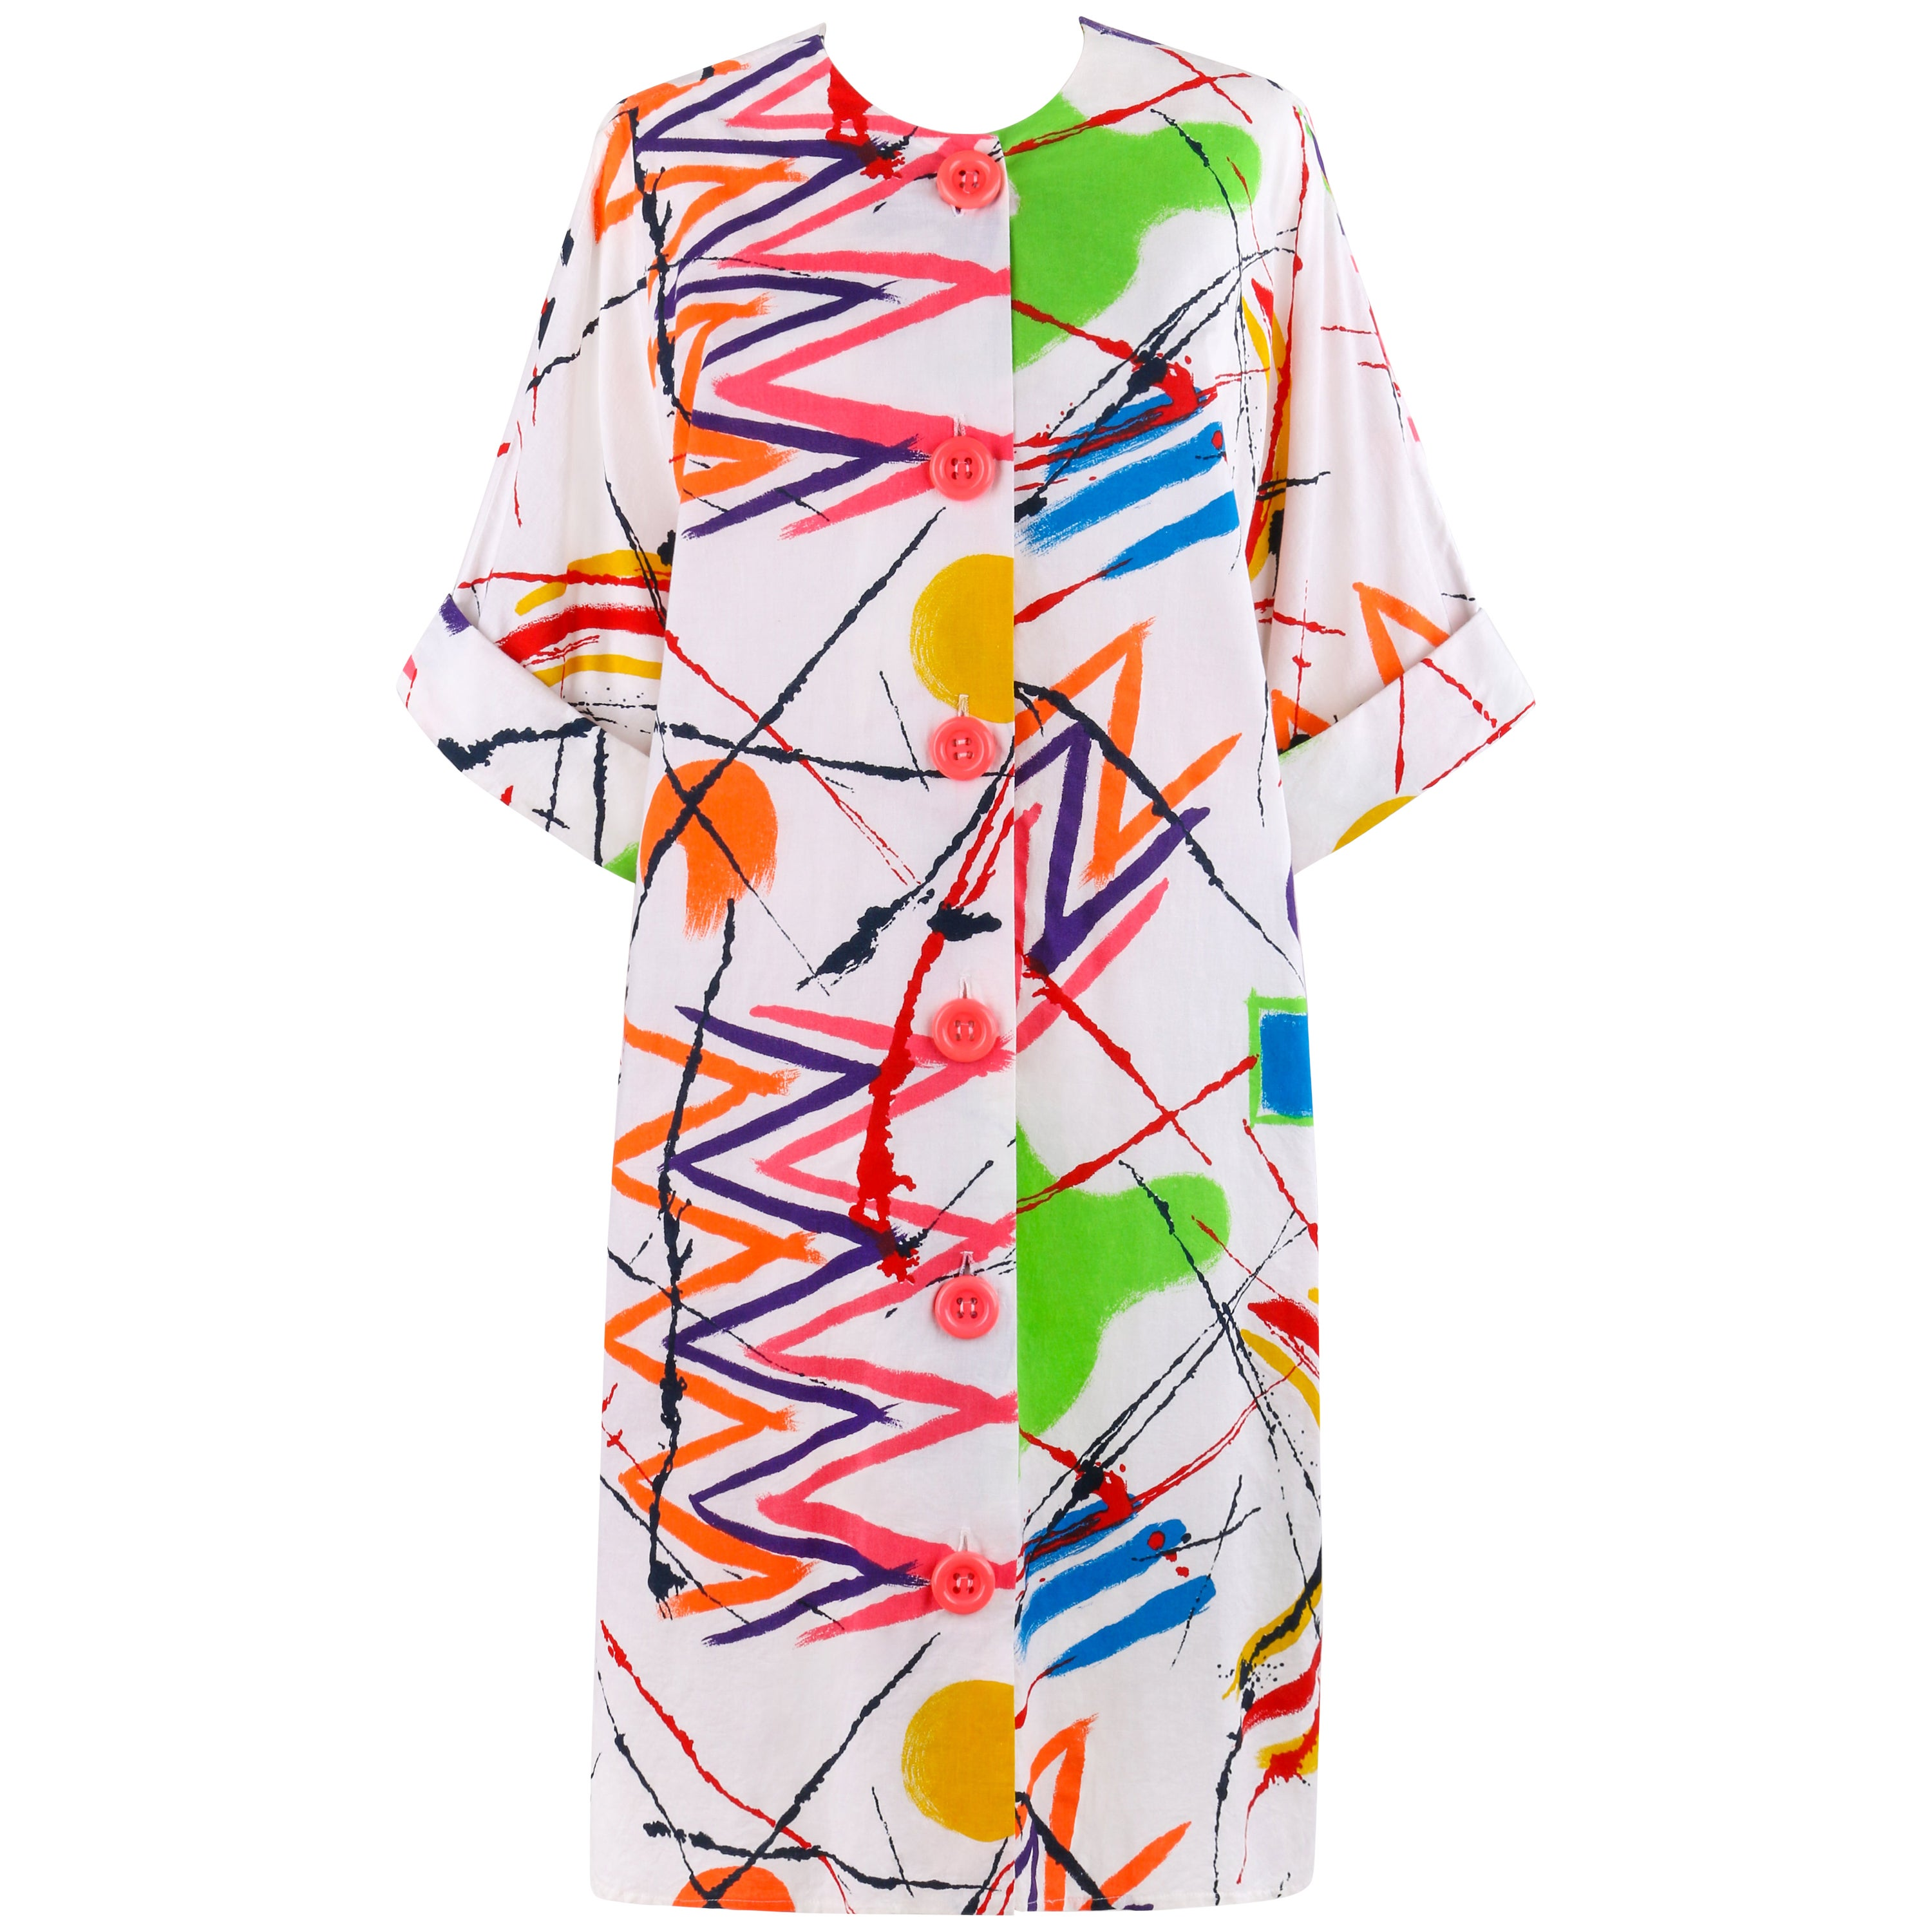 PIERRE CARDIN c.1980's Multi-color Abstract Painterly Tunic Smock Dress